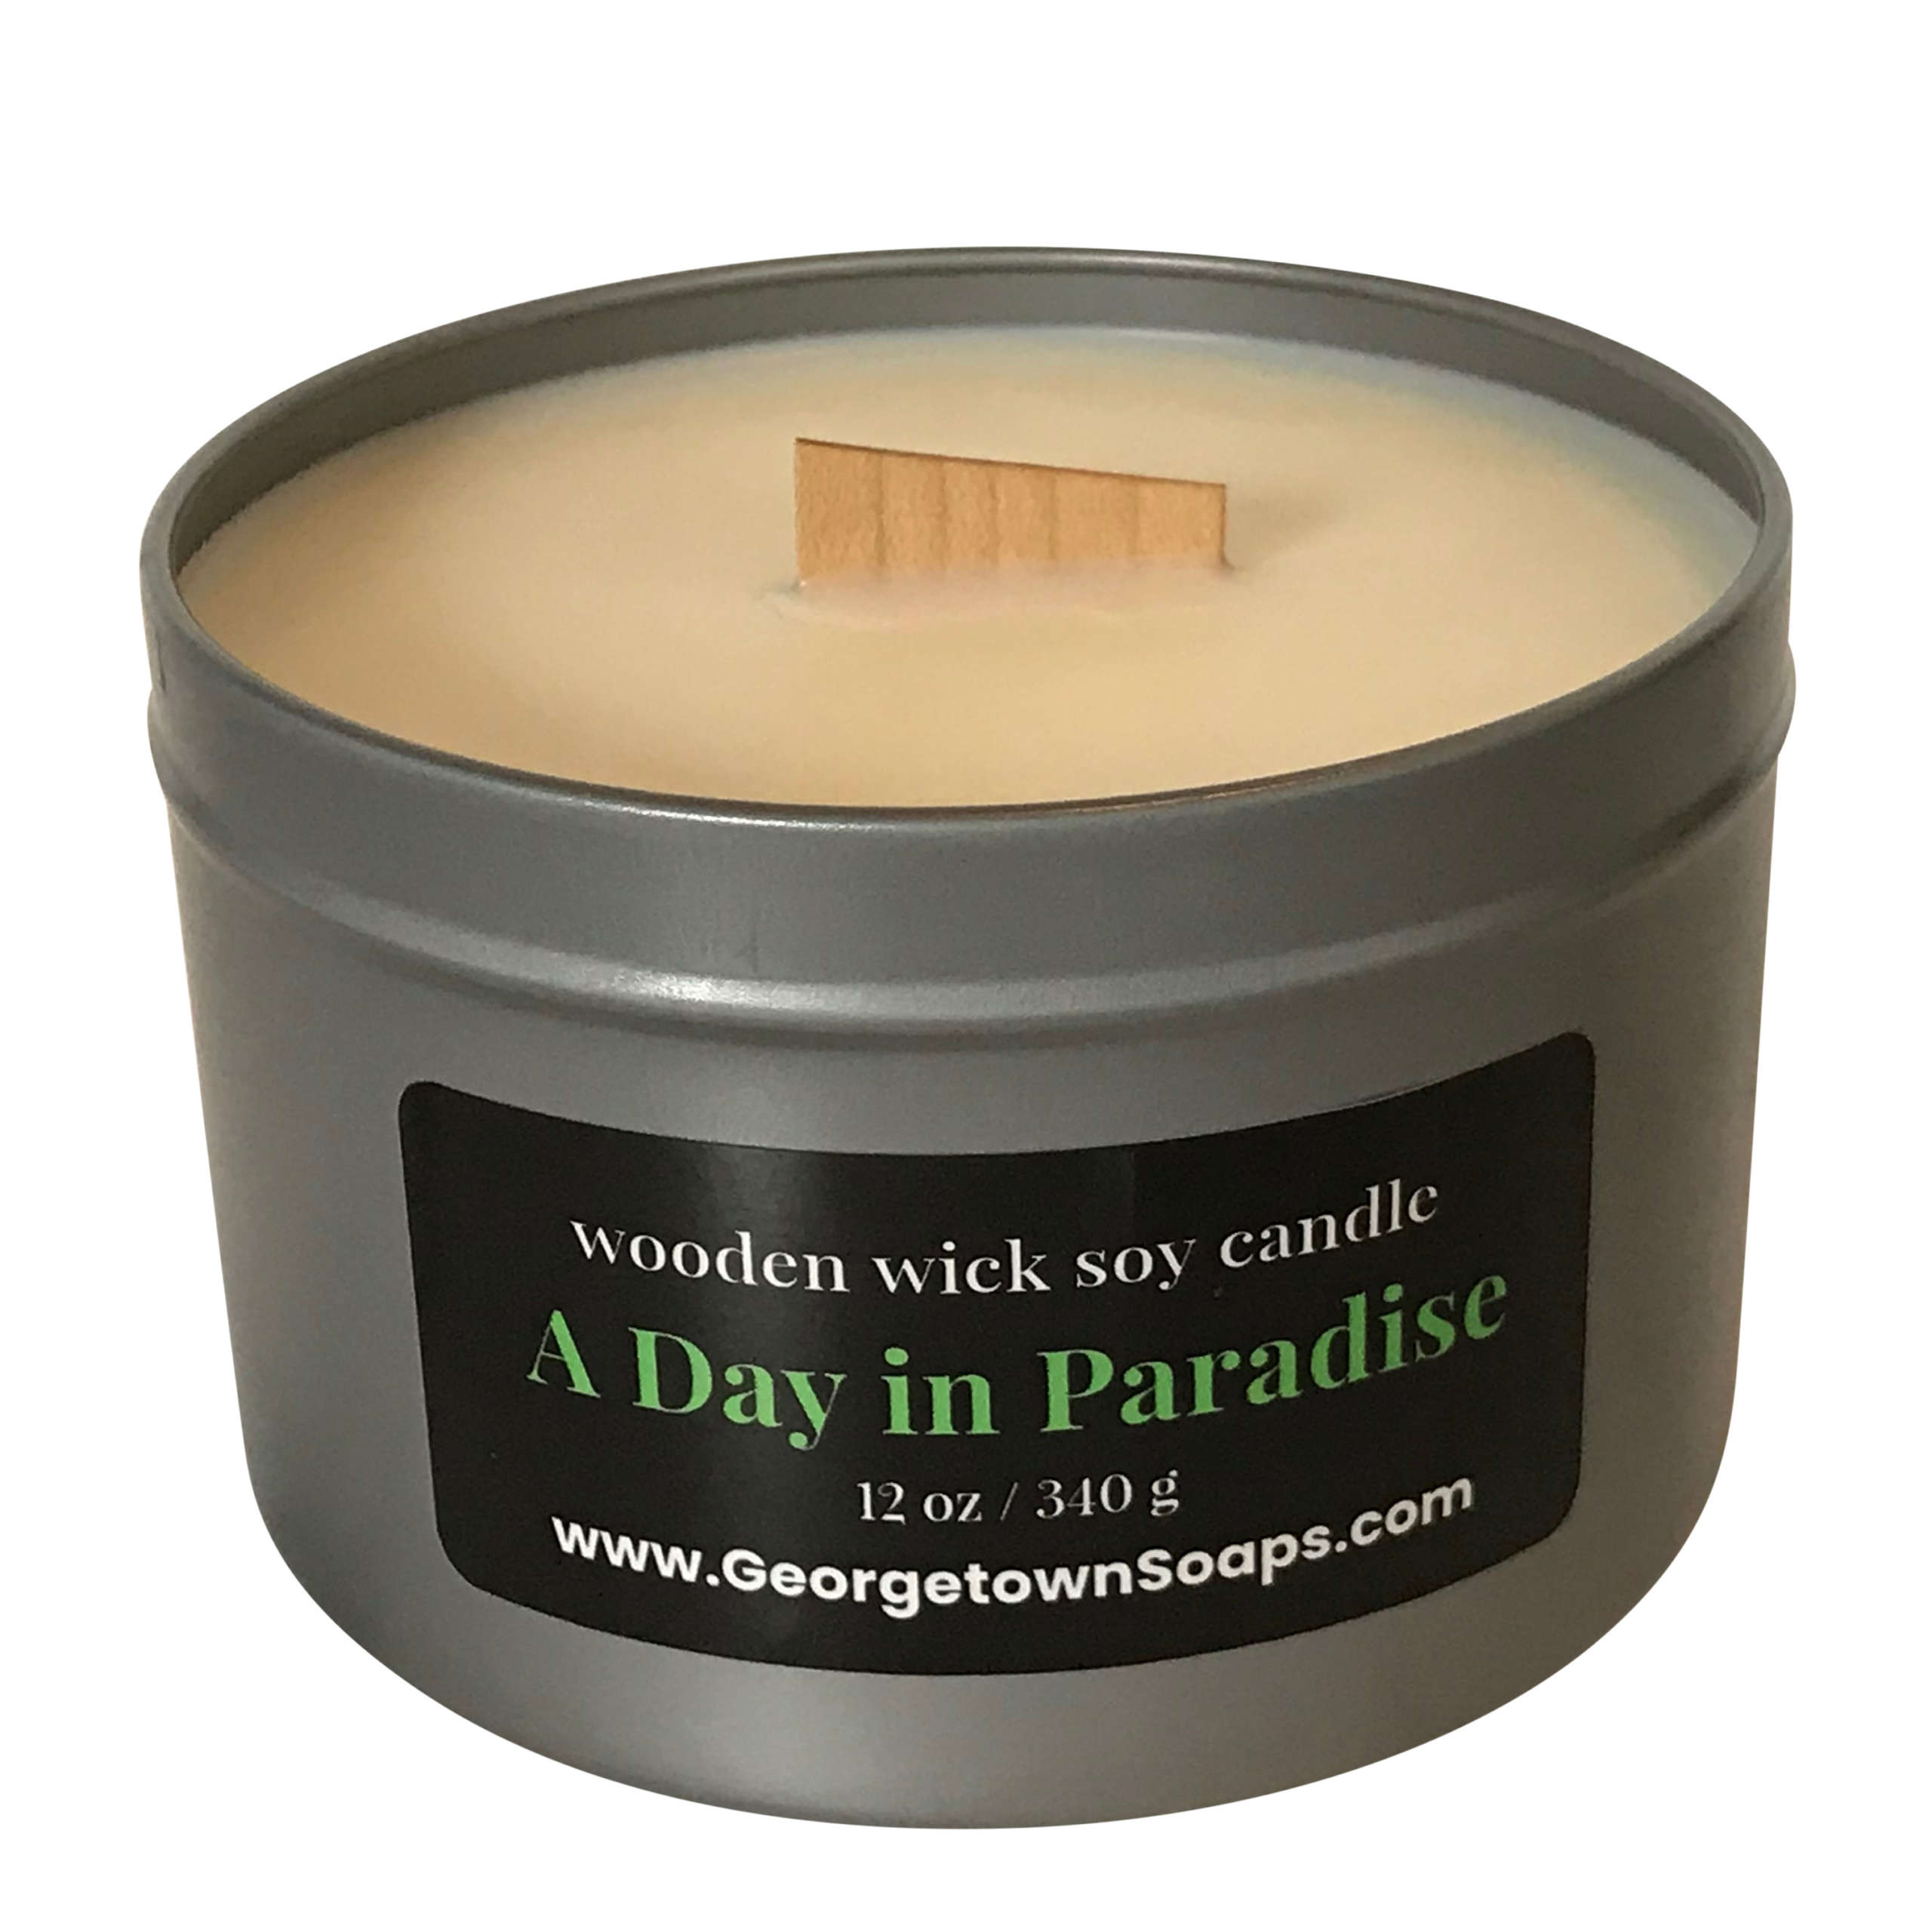 A day in paradise soy candle